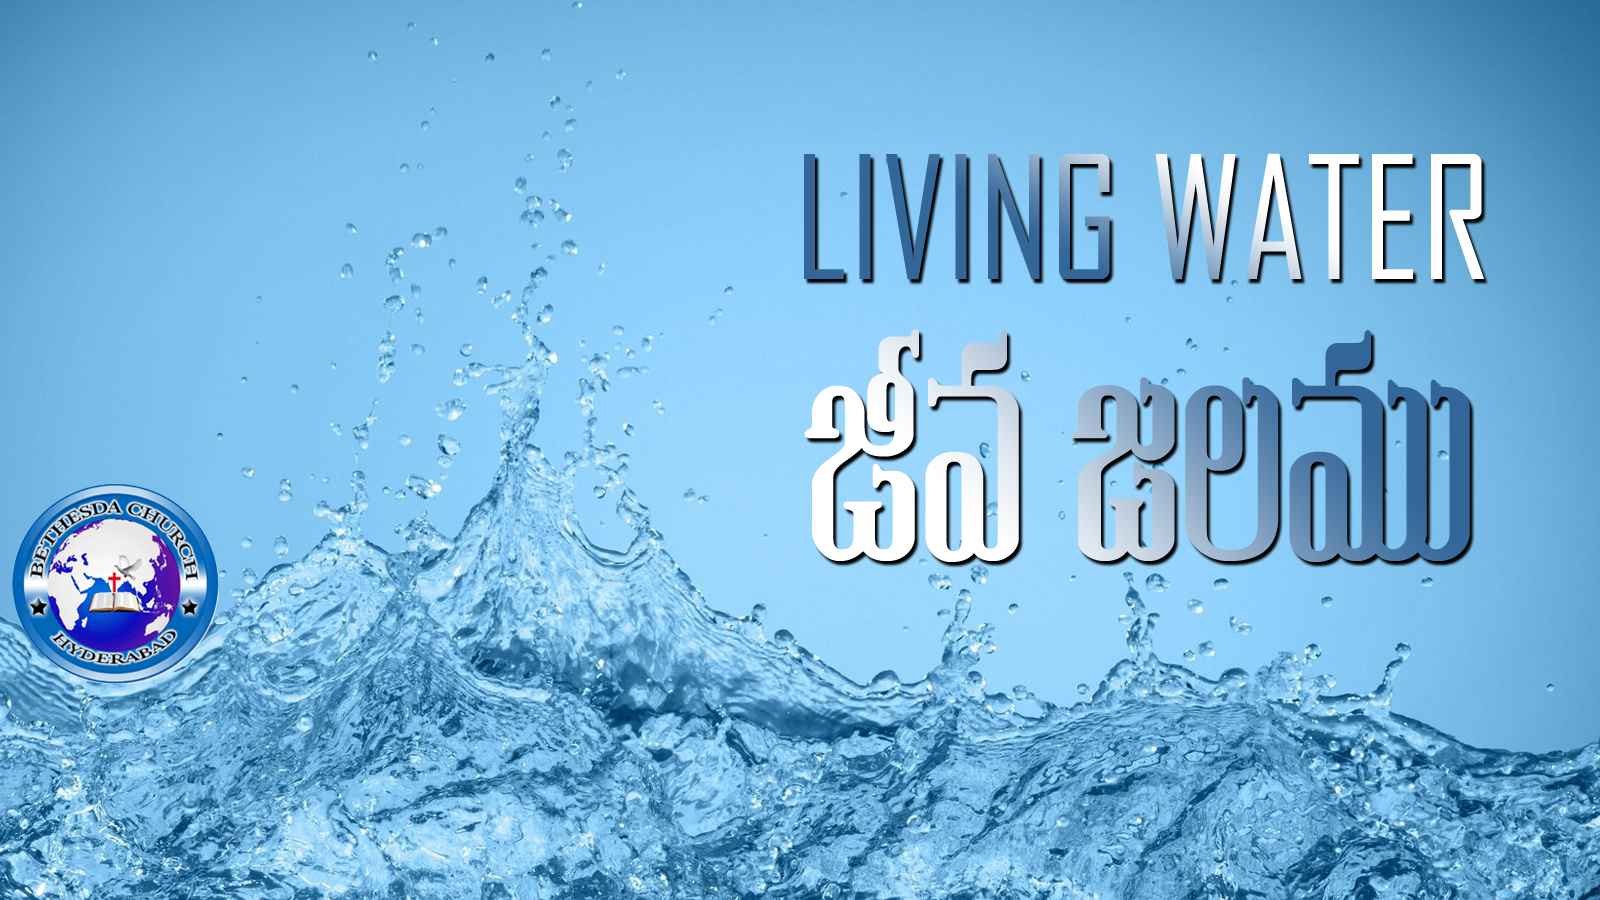 Living Water (A275)